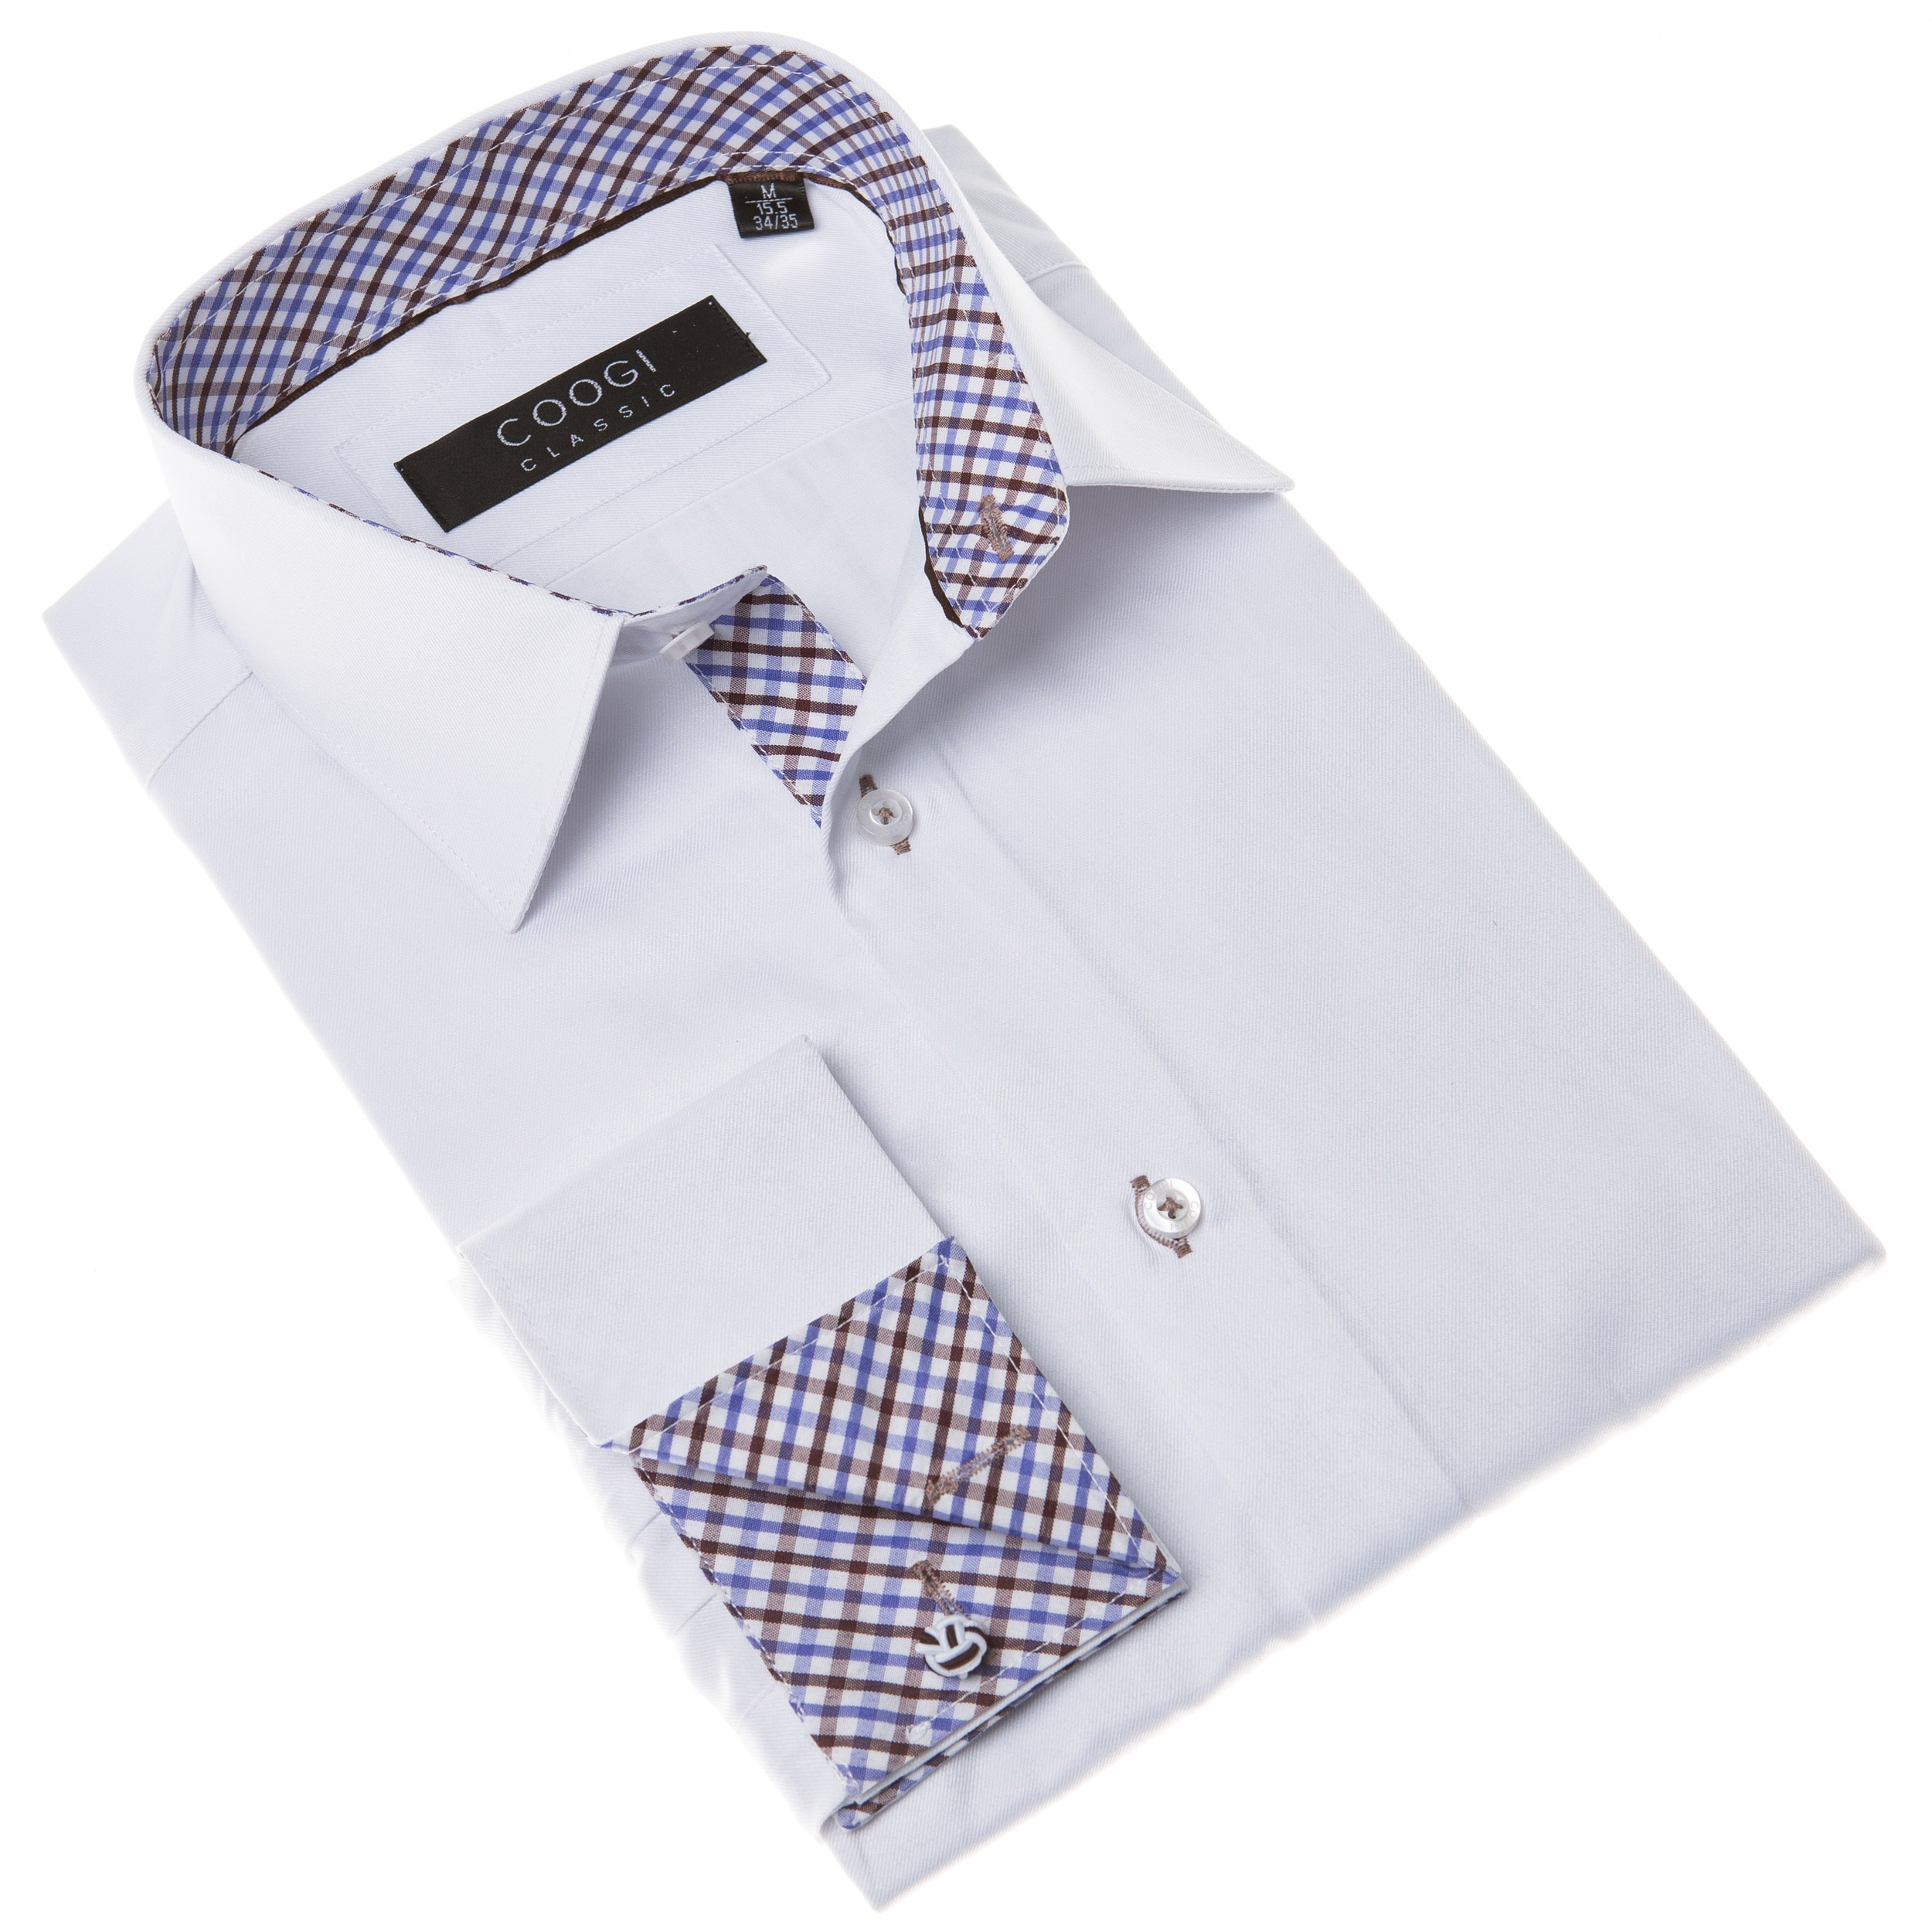 Shop Coogi Mens White Classic Fit Dress Shirt With Brown And Blue